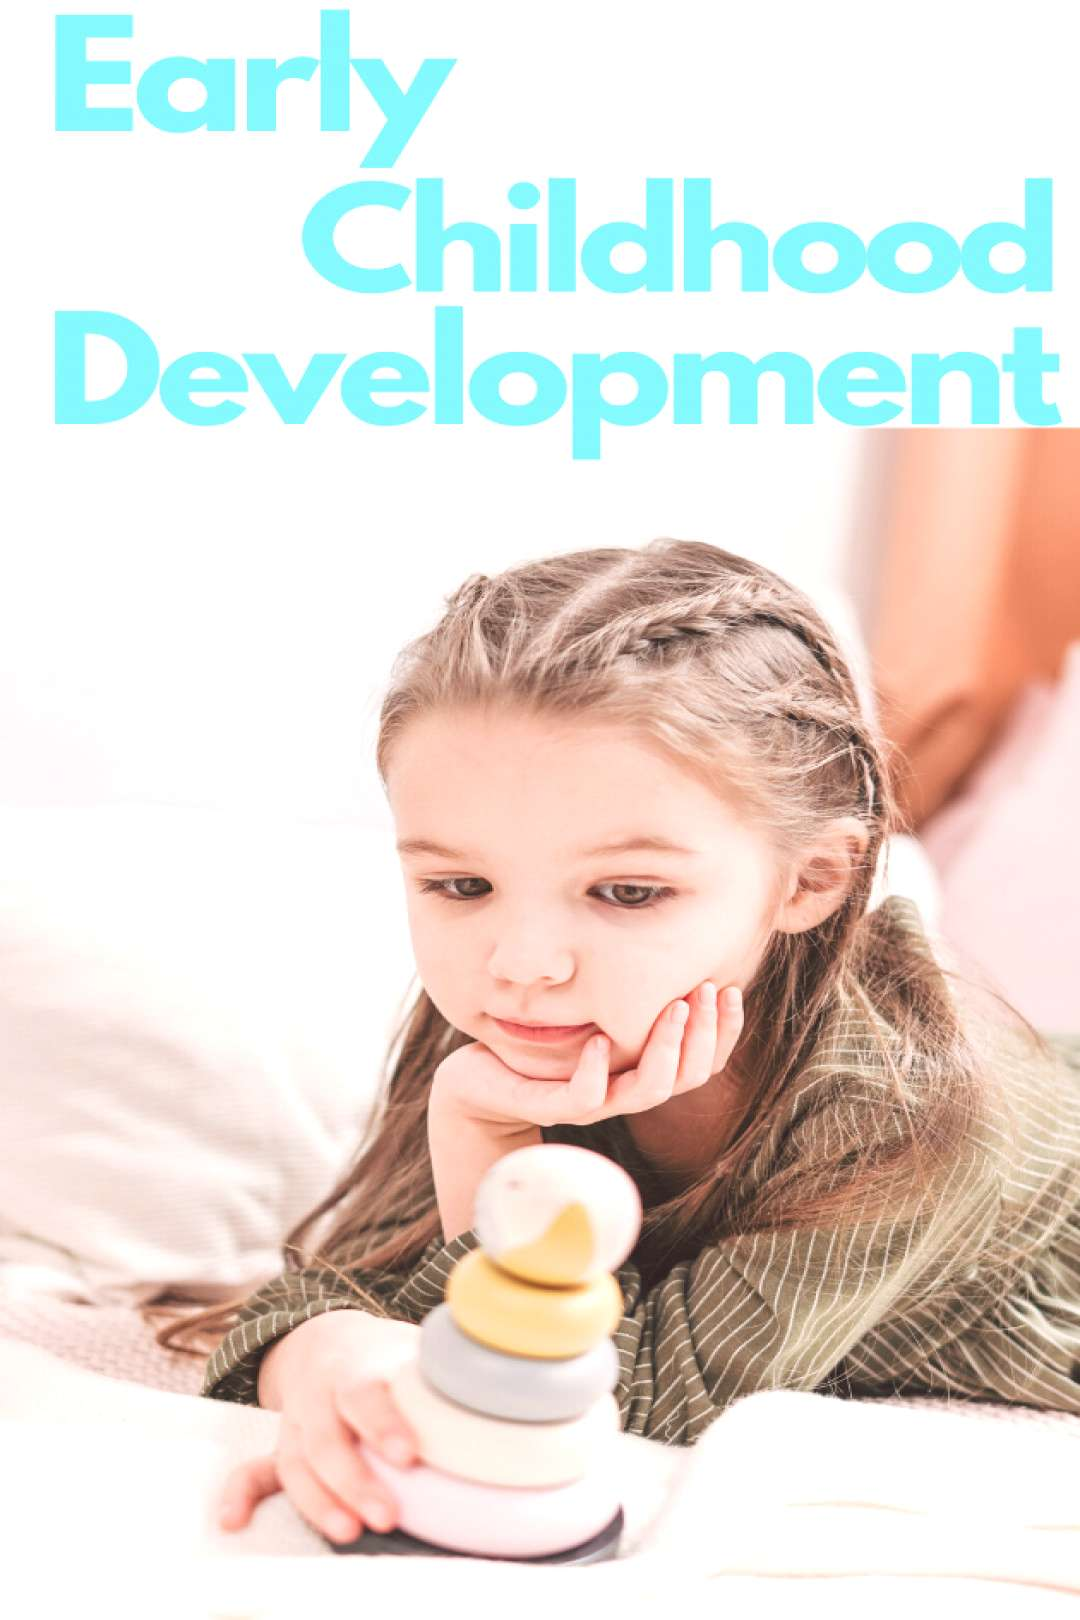 Early childhood development basis Early childhood education is helping to improve childrens develo